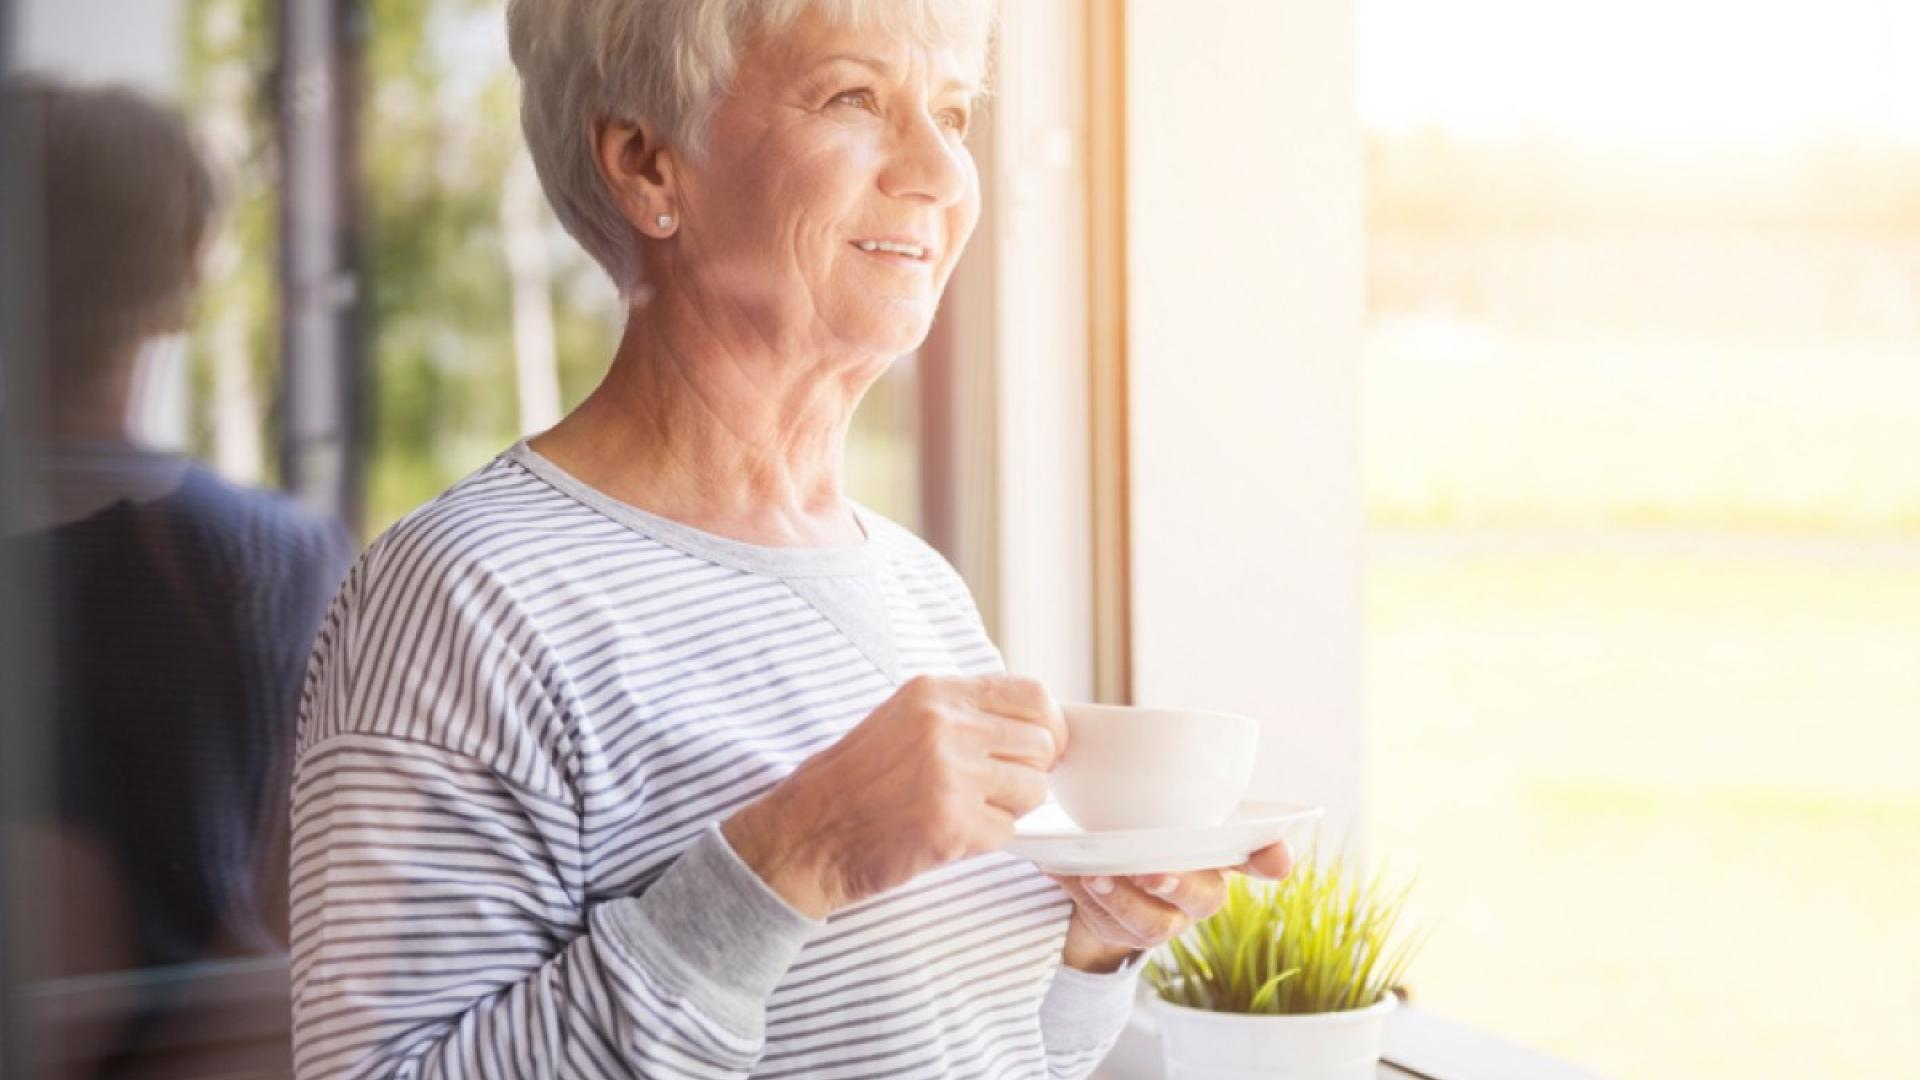 Many arthritis patients have to wait for referral